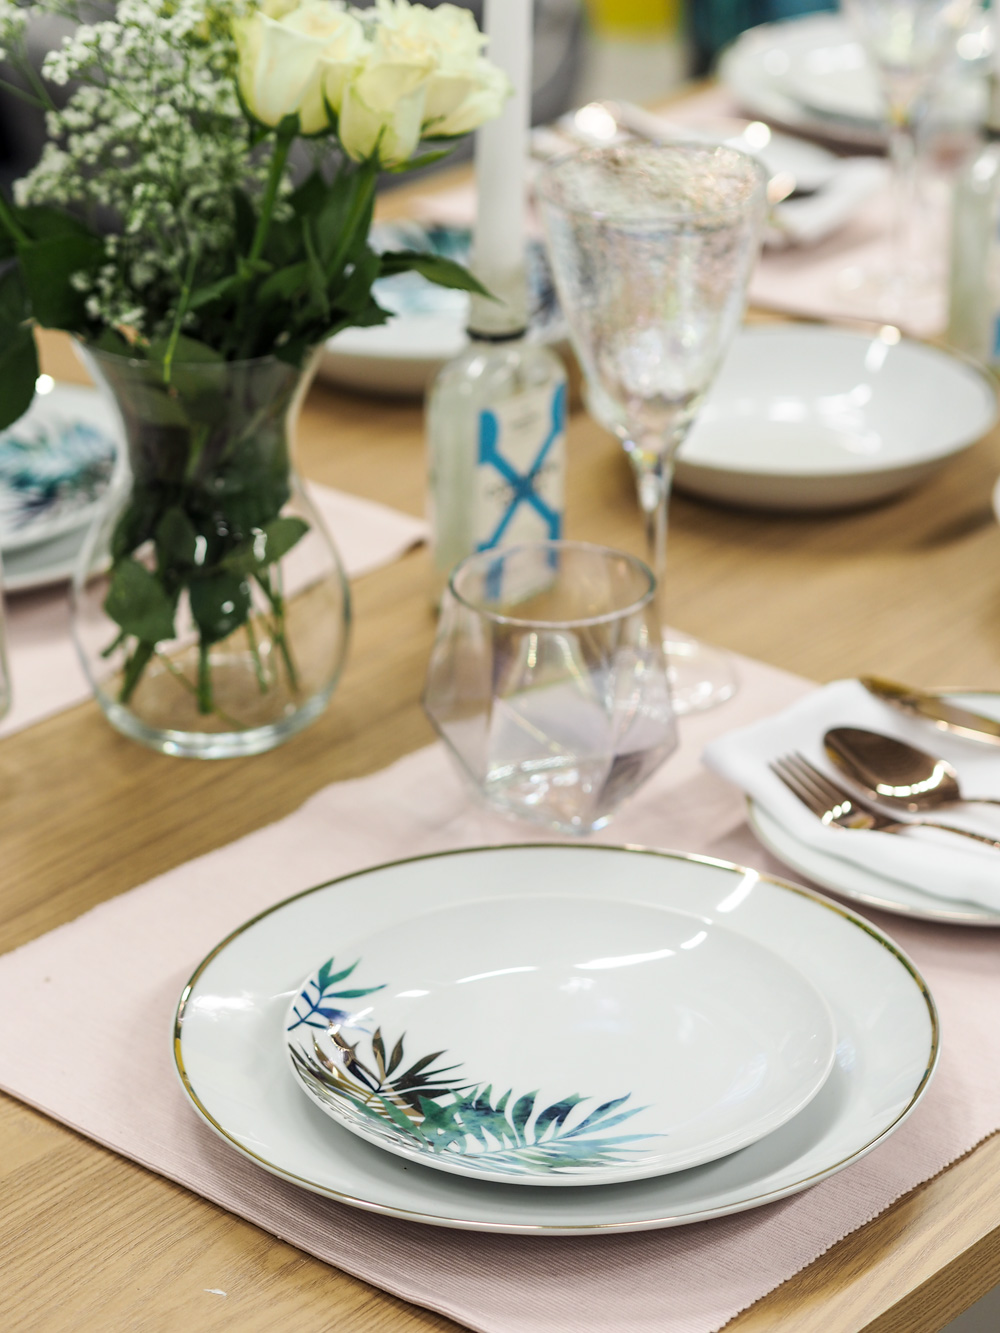 Dining room table setting from Studio.co.uk, the home of affordable interiors